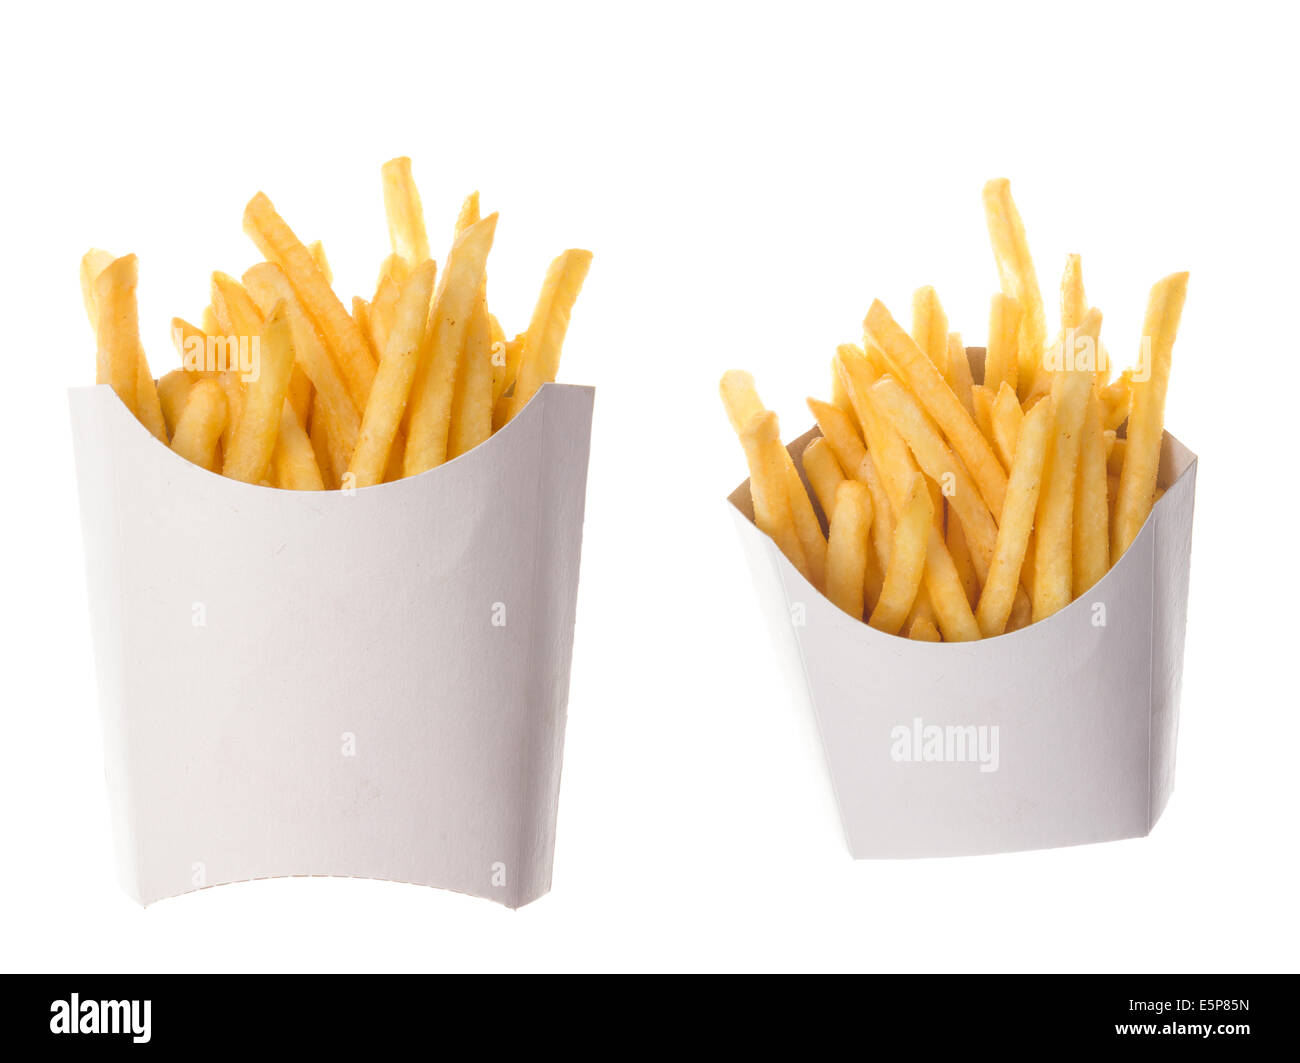 french fries in a paper wrapper on white background; two portions of french fries - Stock Image